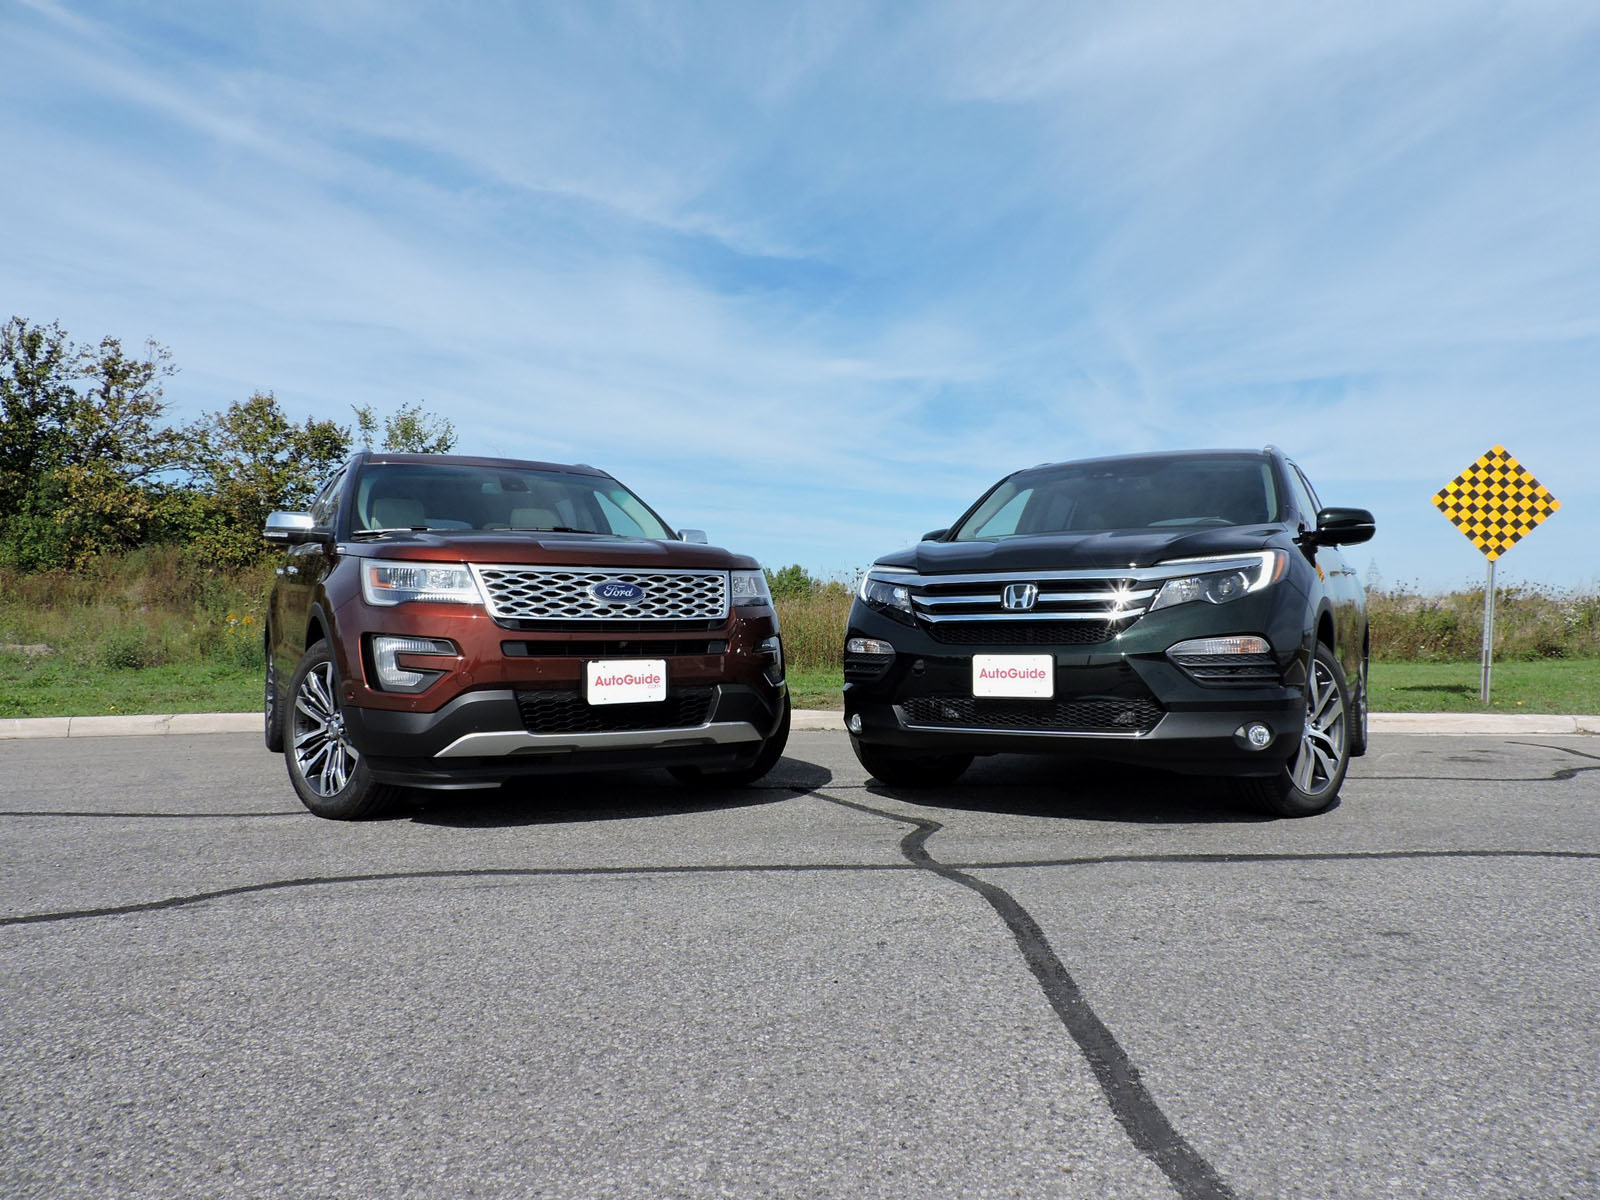 2016 ford explorer vs 2016 honda pilot 01